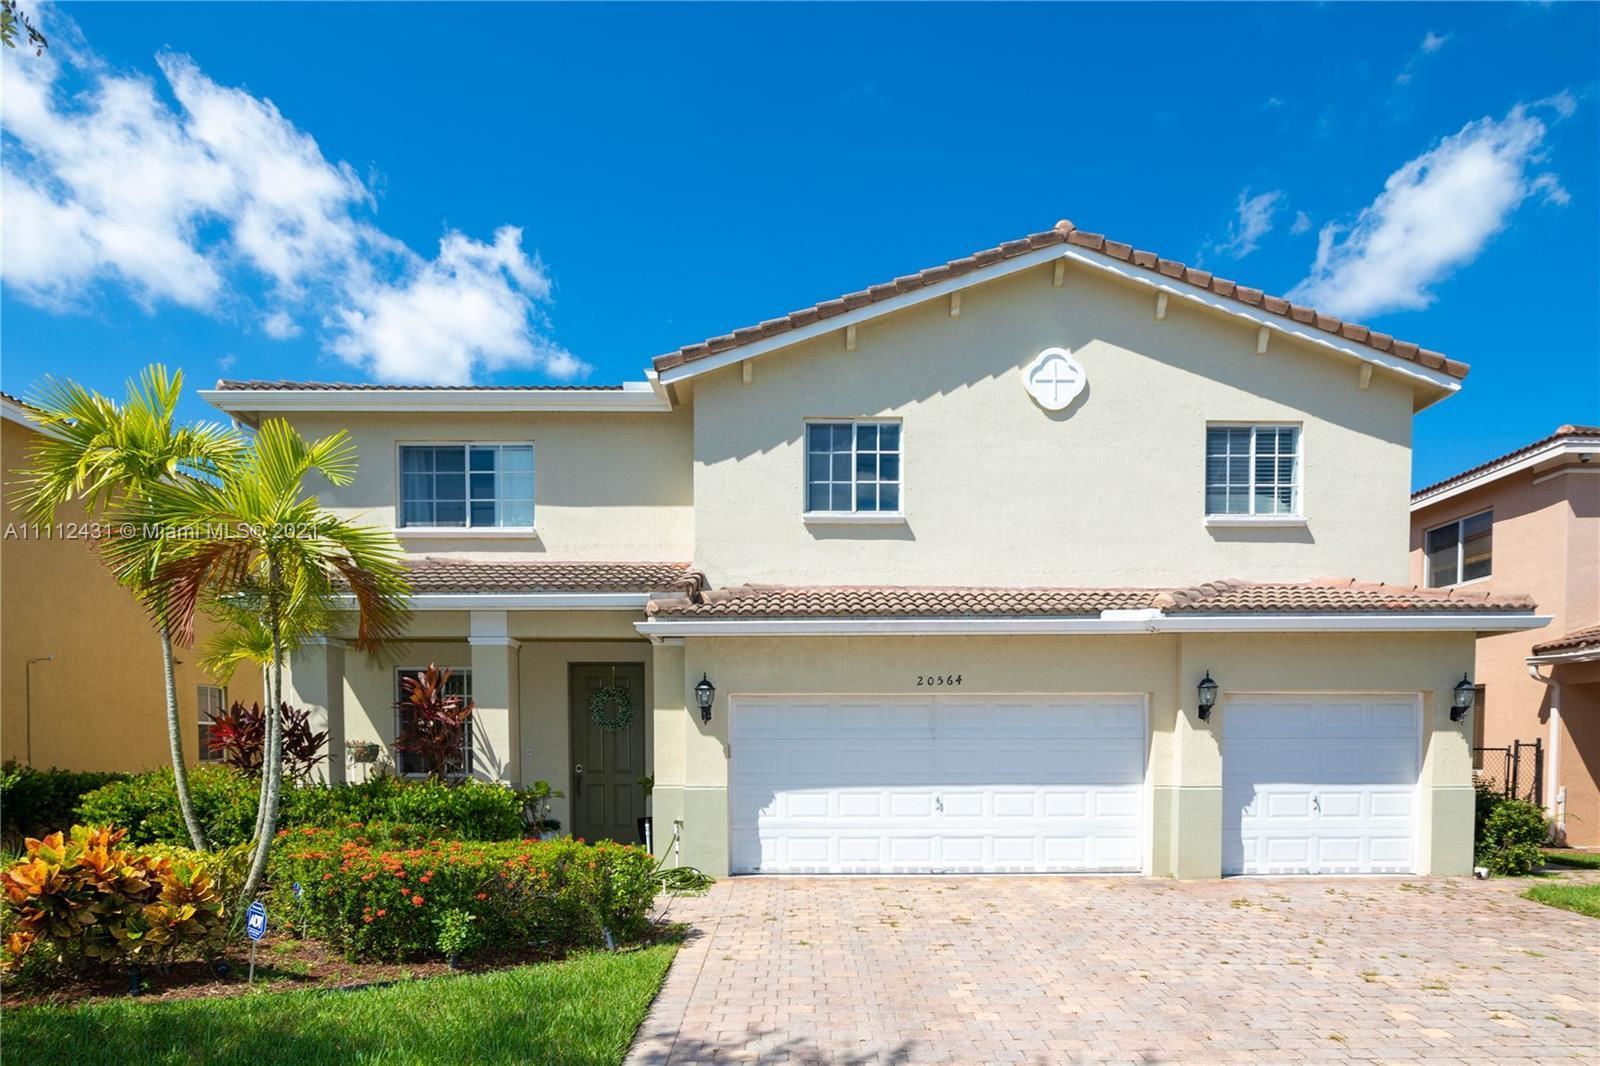 Photo of 20564 NW 11th Ave, Miami Gardens, FL 33169 (MLS # A11112431)